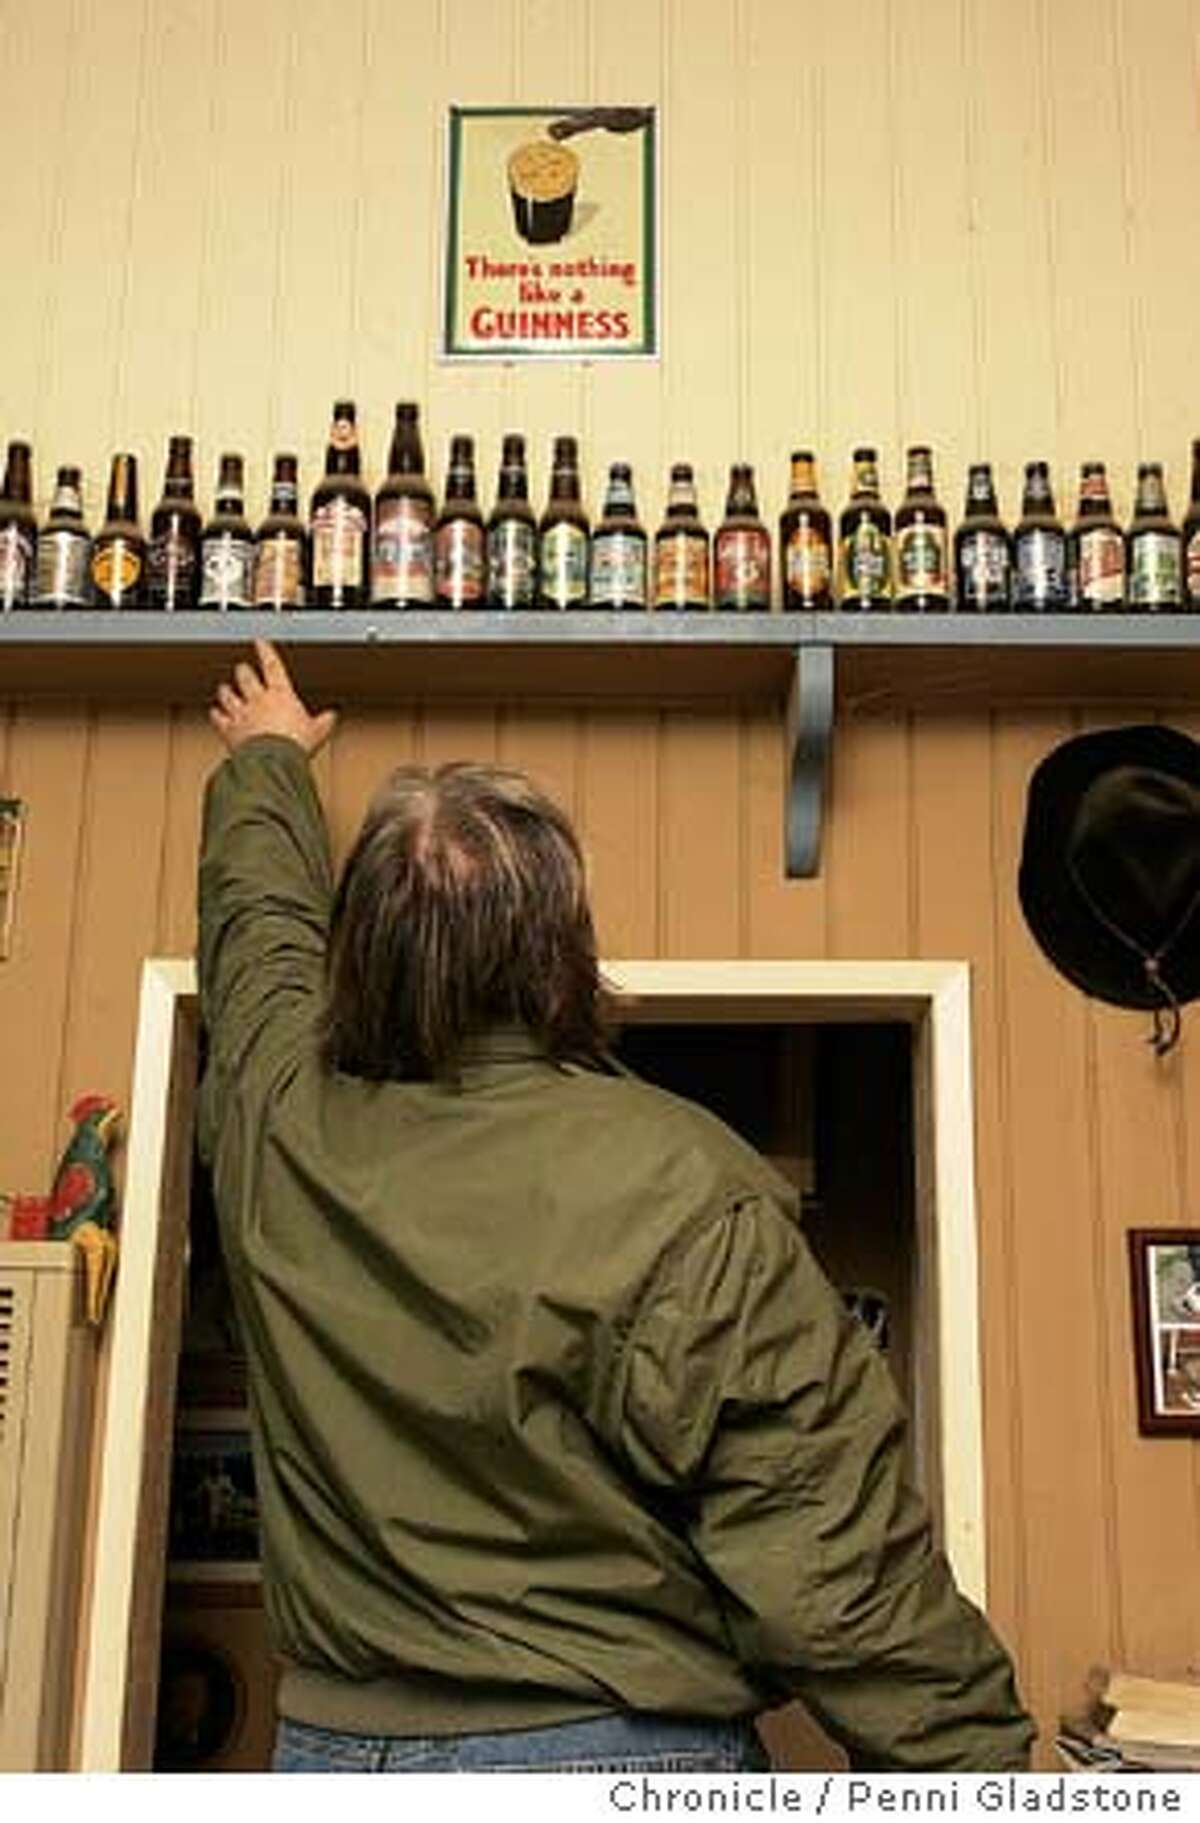 NBSPARKS195PG.JPG Sparks shows off his collection of beer bottles in his livingroom. Steve Sparks, a Brit who used to own the Mad Dog in the Fog pub in the Lower Haight. He and his wife up and moved to Mendocino The San Francisco Chronicle, Penni Gladstone Photo taken on 1/10/05, in Mendocino, CA.